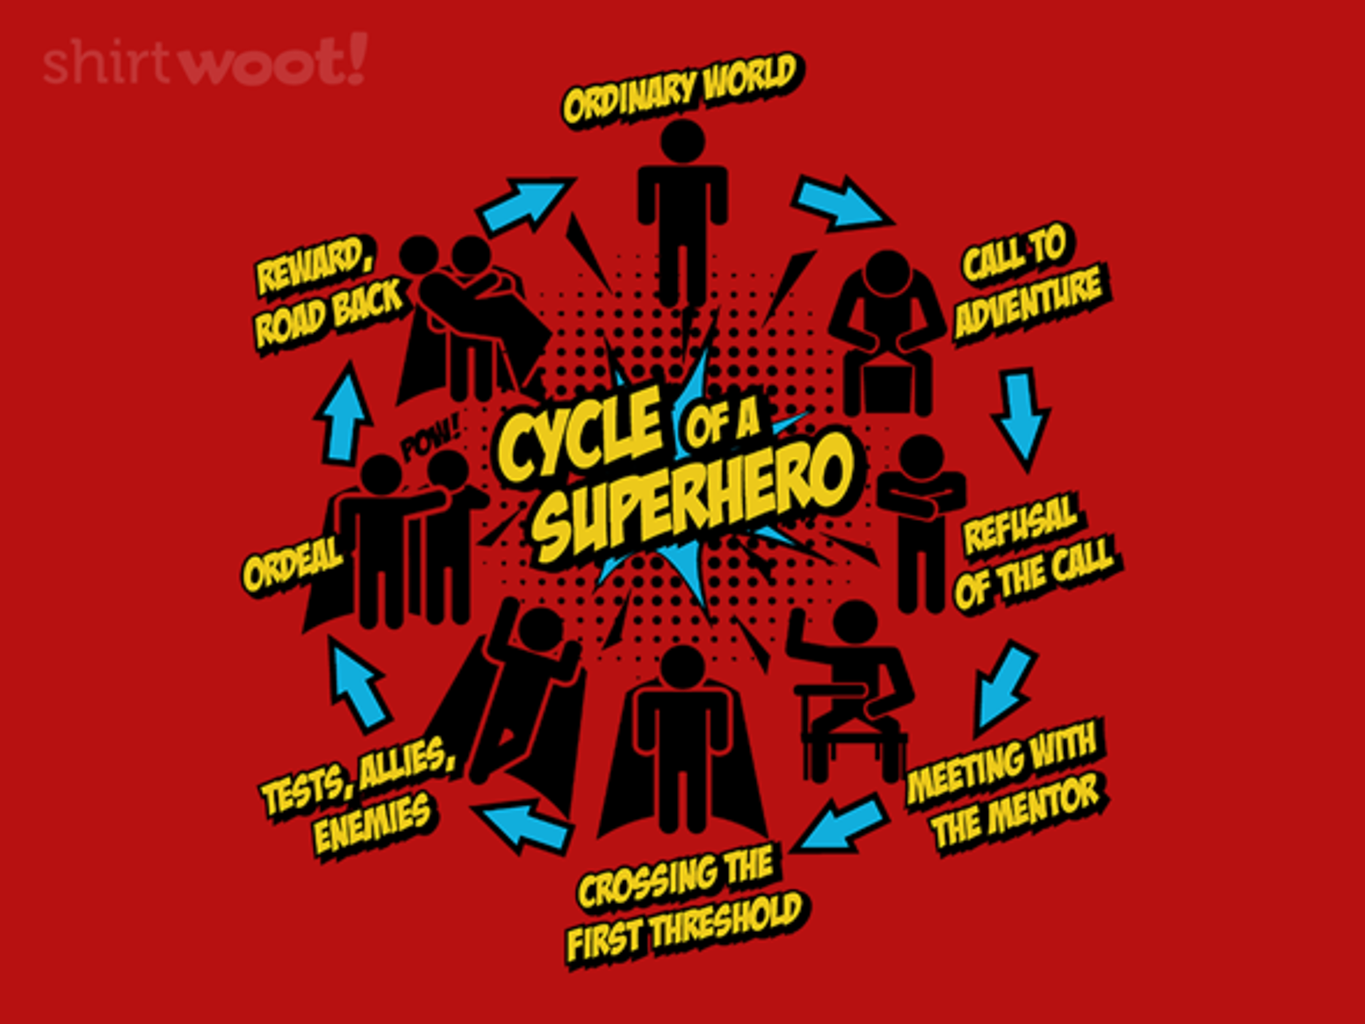 Woot!: Cycle of a Superhero